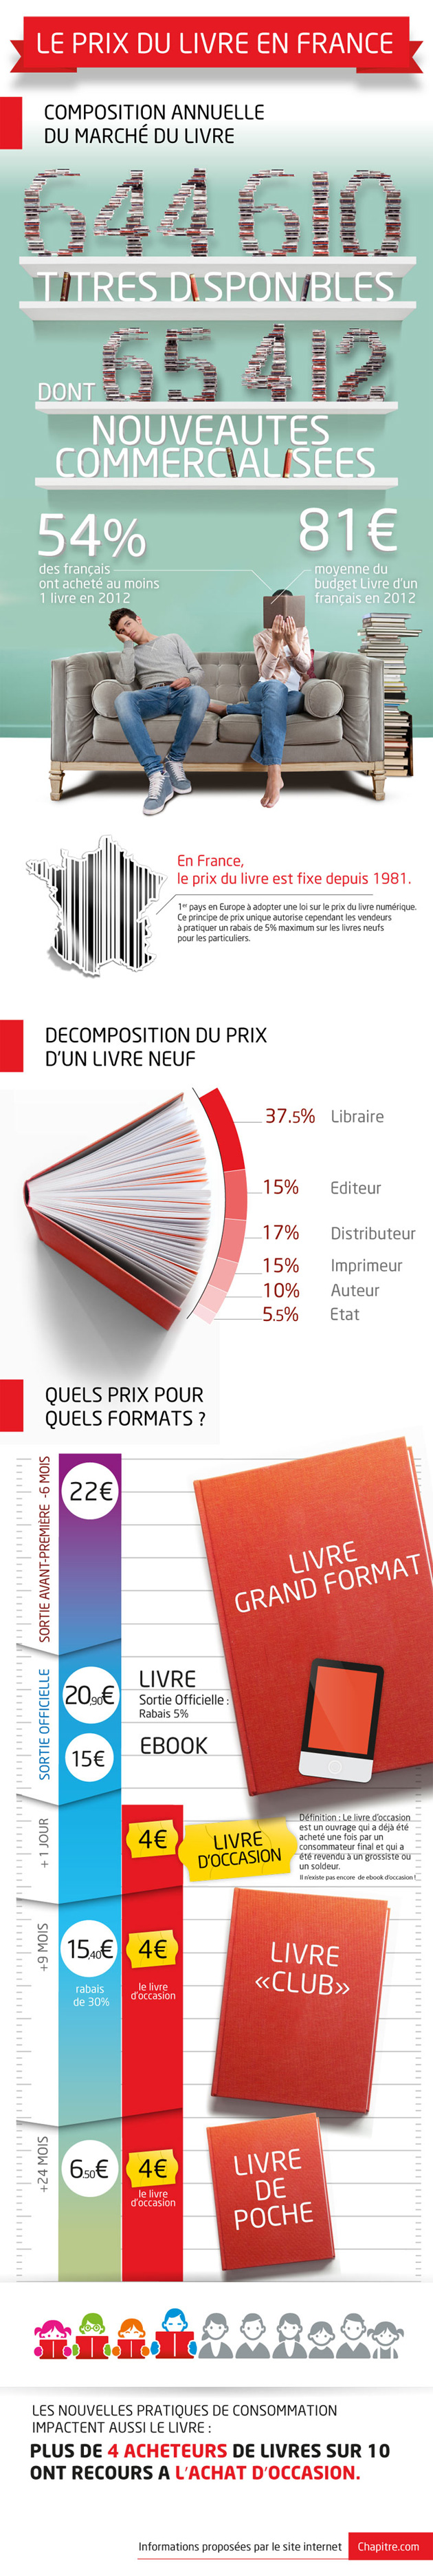 infographie les chiffres cl s du march du livre en france. Black Bedroom Furniture Sets. Home Design Ideas